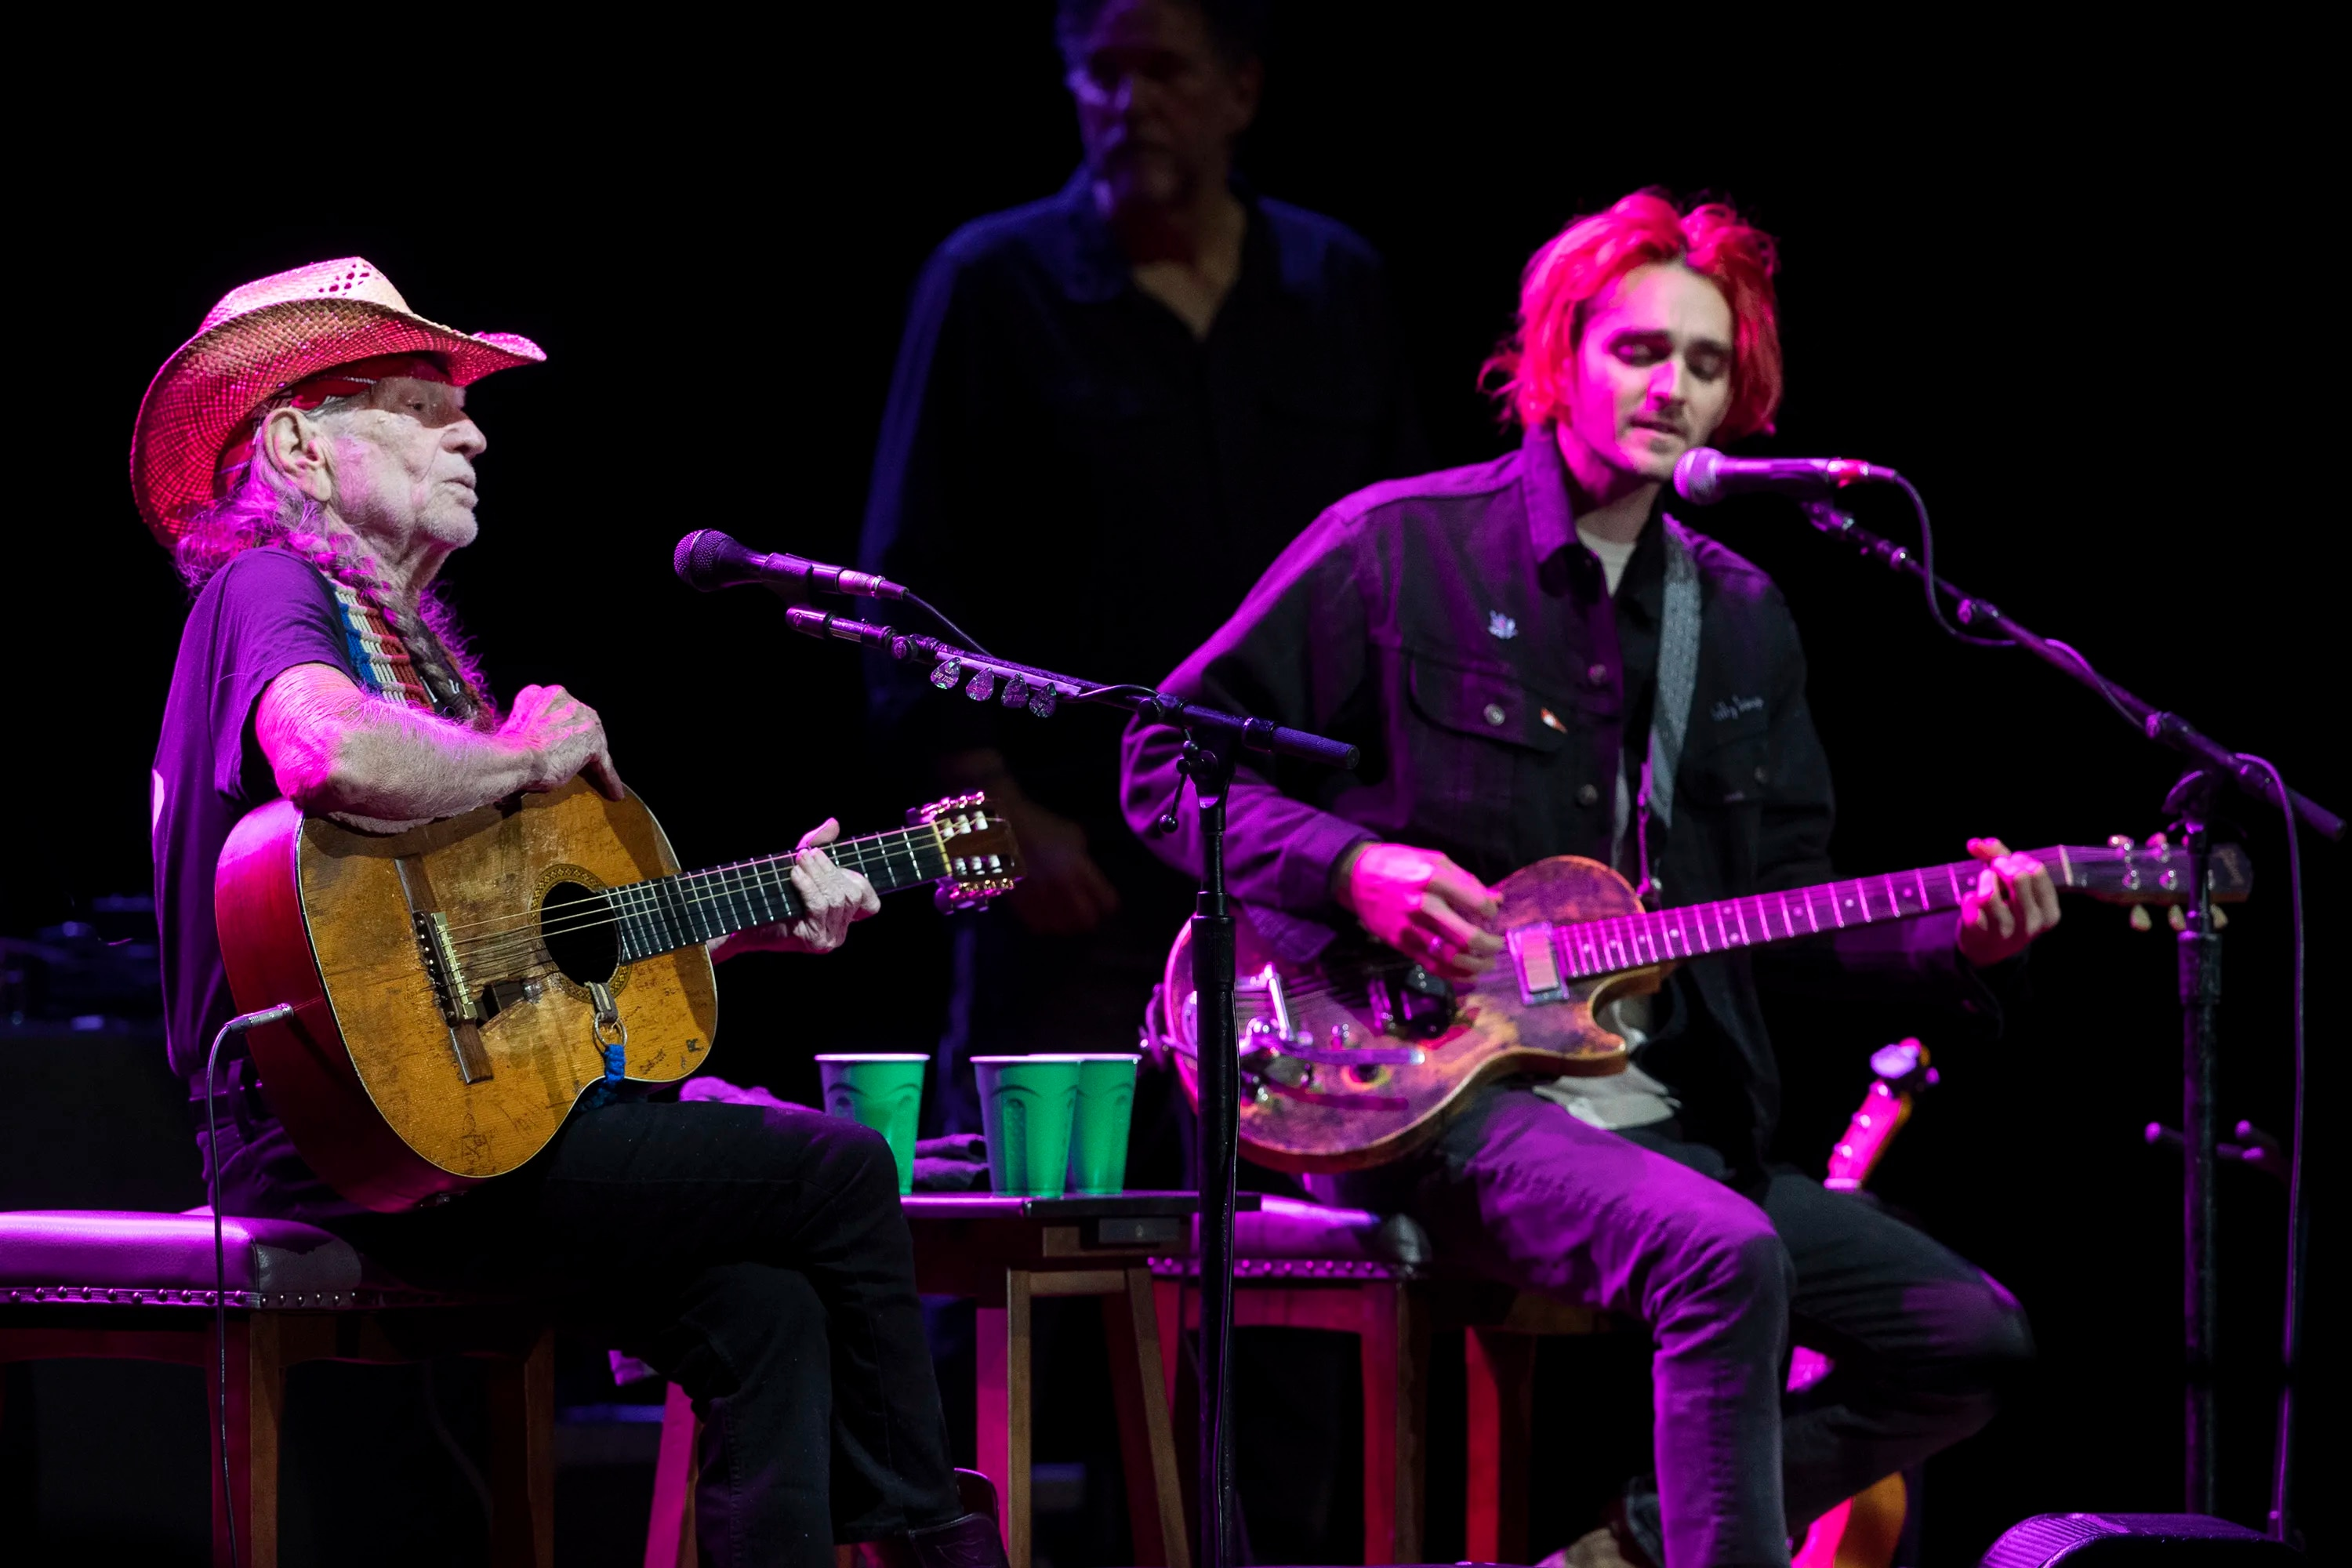 Willie Nelson and son Micah Nelson perform a duet at the Outlaw Music Festival at the Mann Music Center Saturday.